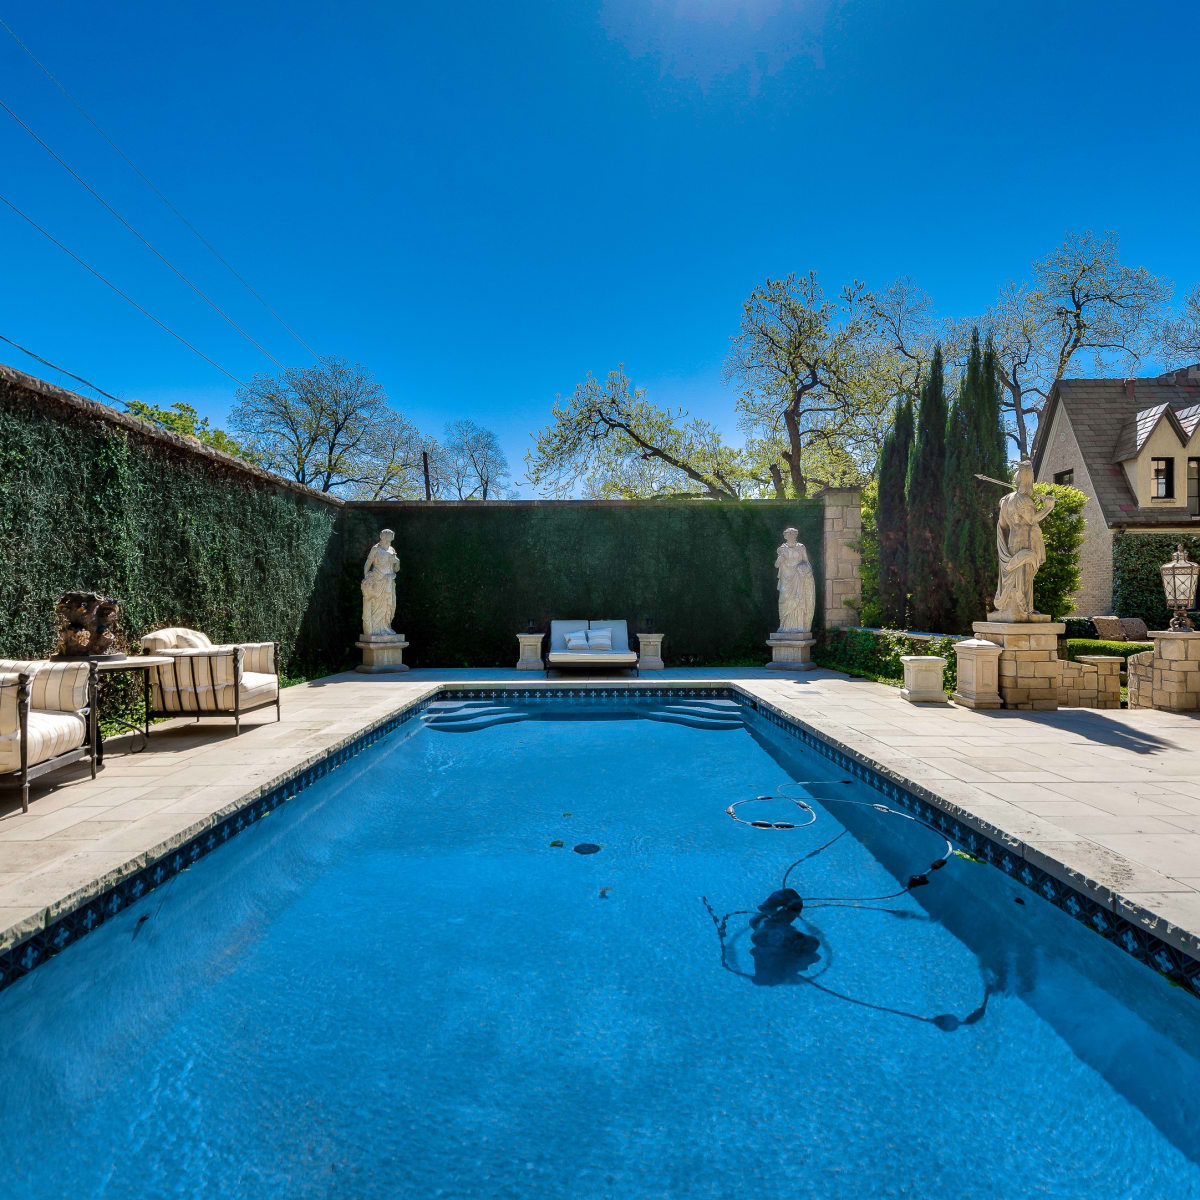 6941 Gaston Ave., R.L. Thornton home for sale, Dallas